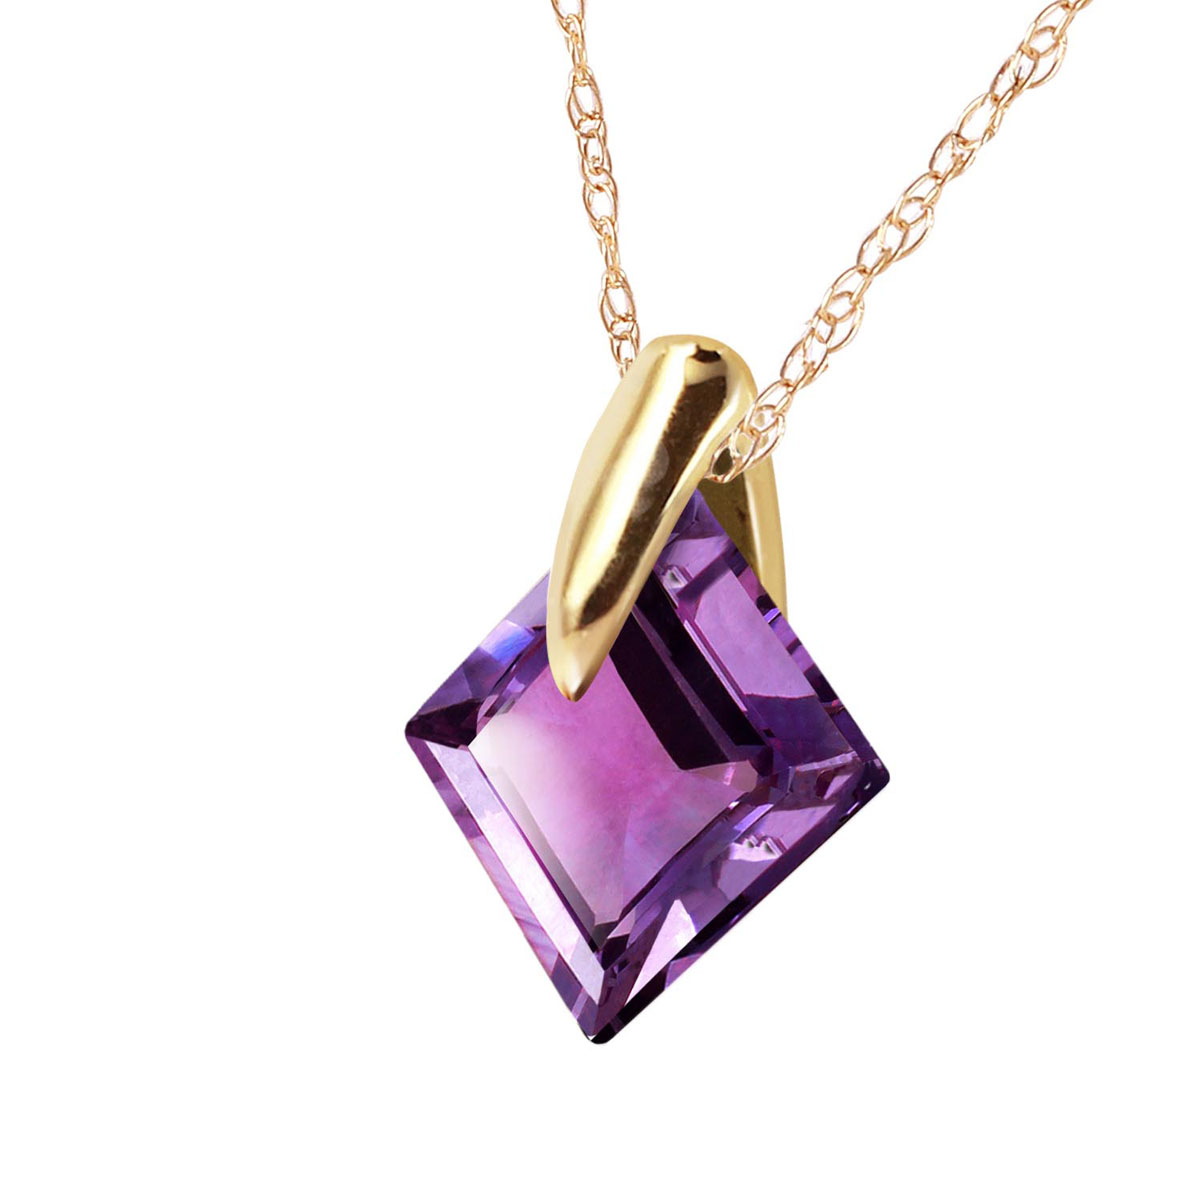 Amethyst Princess Pendant Necklace 1.16 ct in 9ct Gold